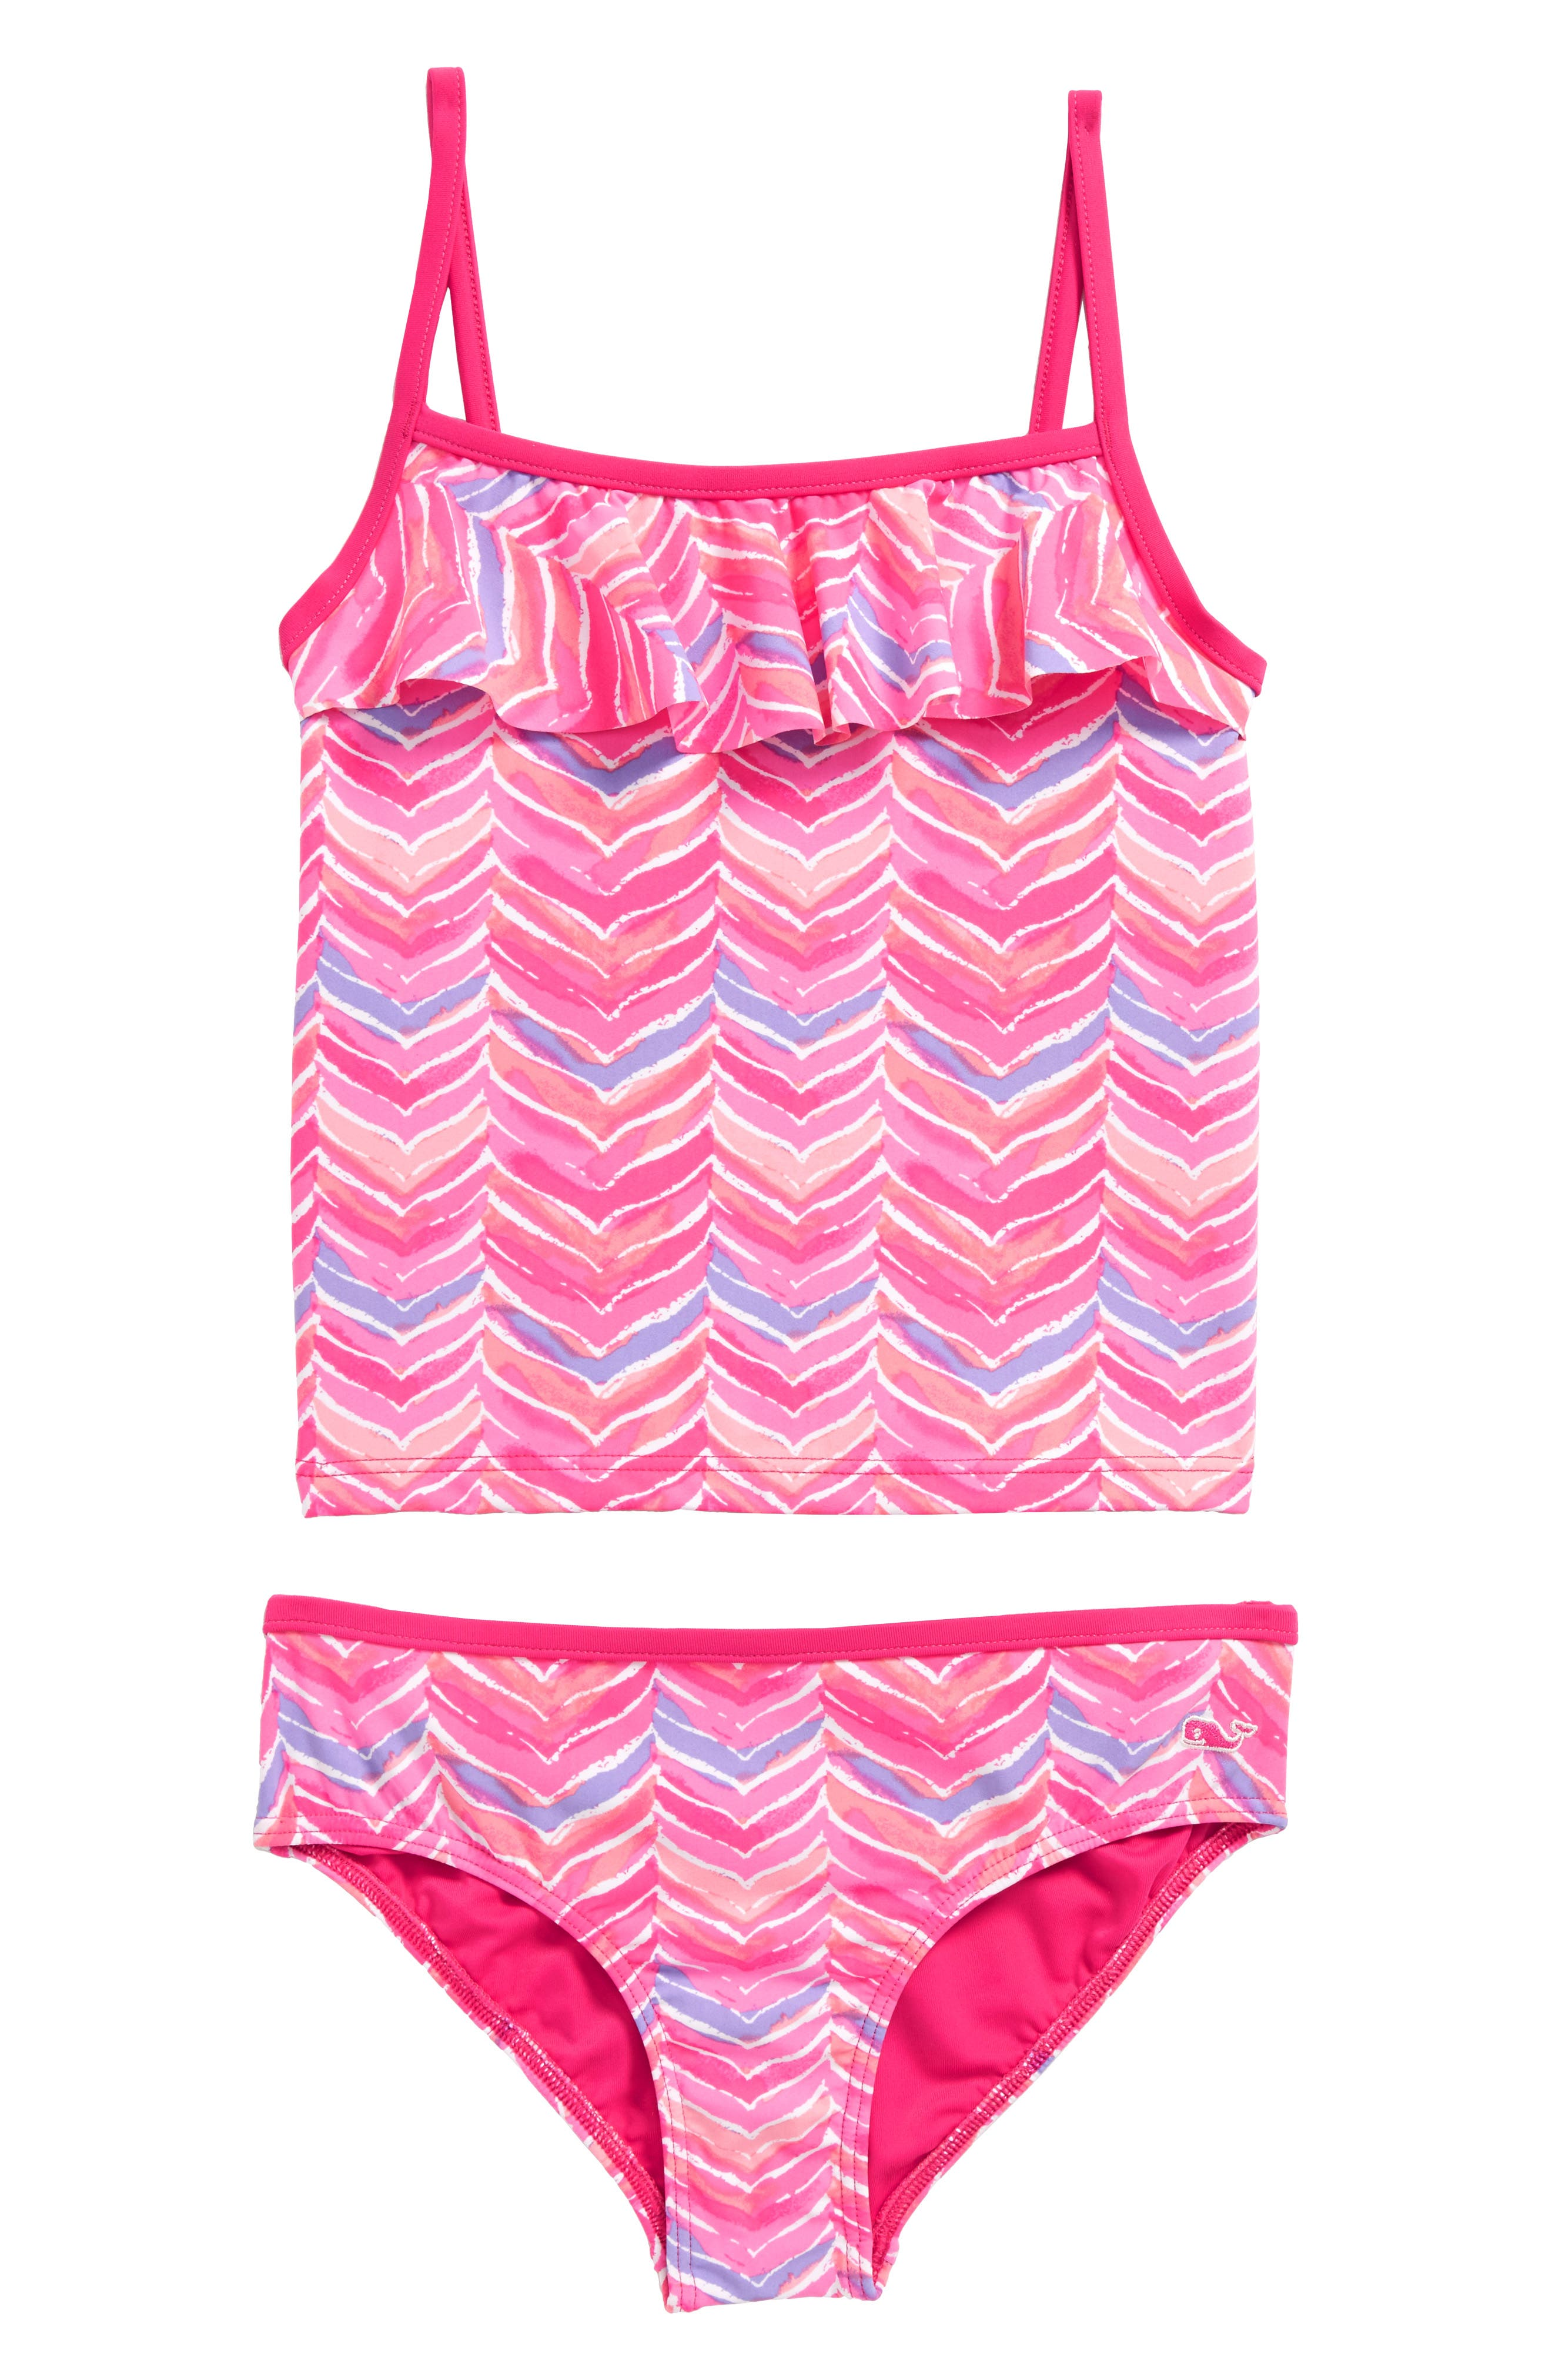 Whale Tail Two-Piece Tankini Swimsuit,                             Main thumbnail 1, color,                             650